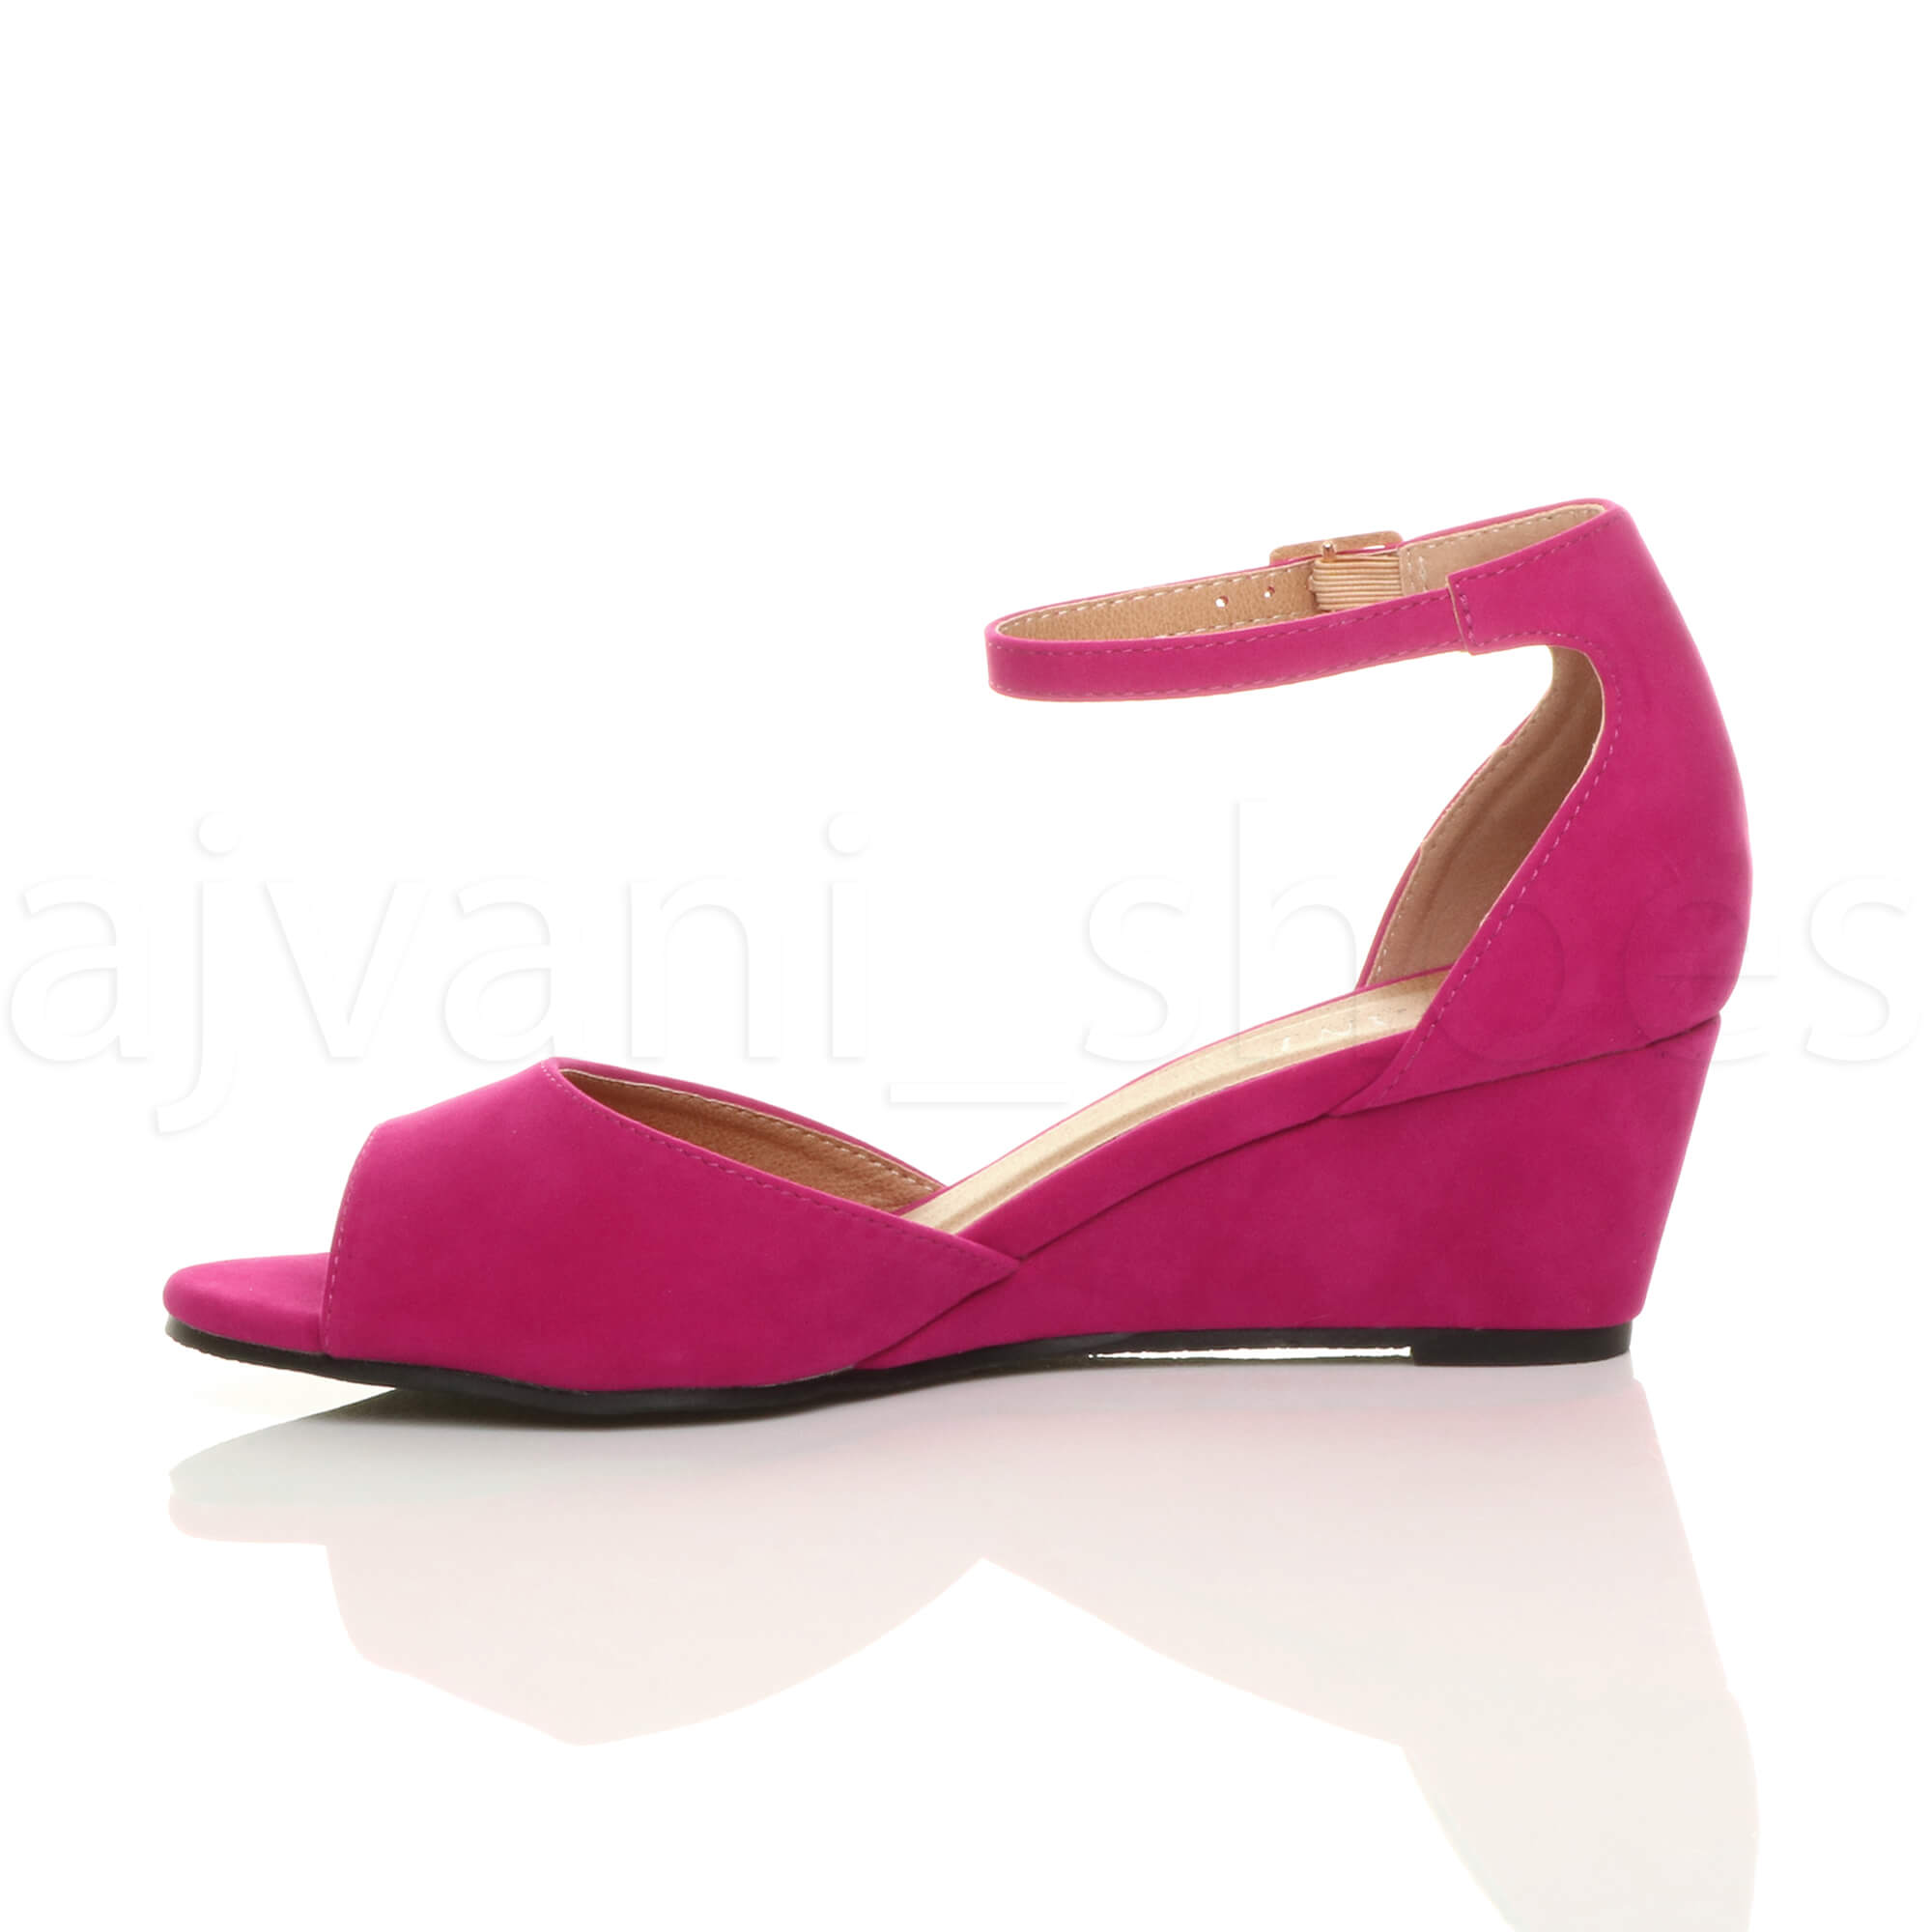 WOMENS-LADIES-LOW-MID-WEDGE-HEEL-ANKLE-STRAP-SMART-CASUAL-EVENING-SANDALS-SIZE thumbnail 44